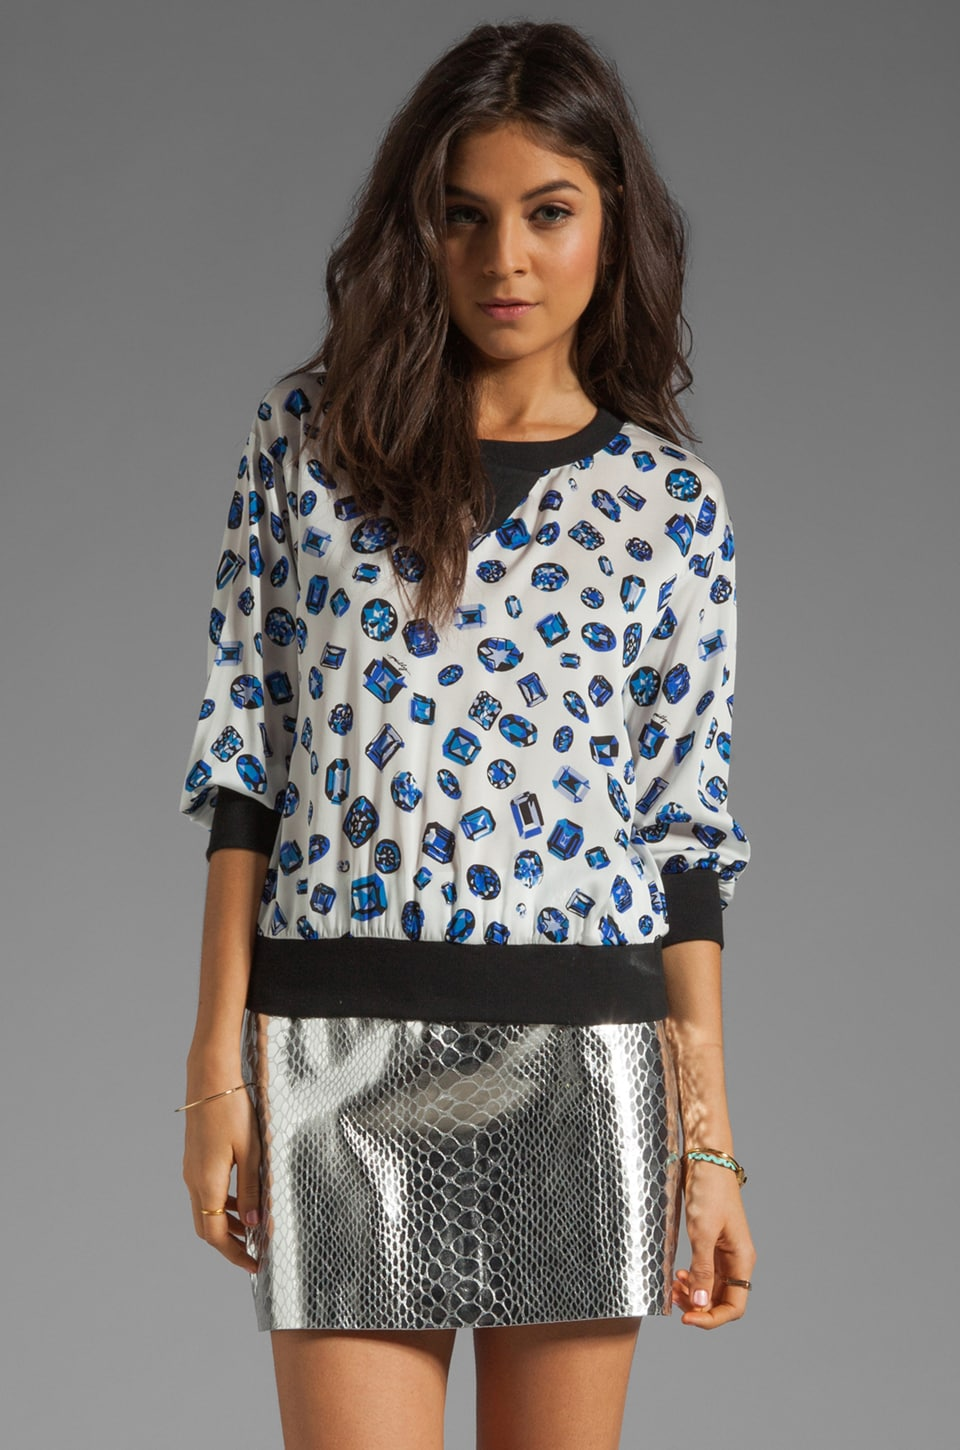 MILLY Jewel Print on Silk Stretch Georgette Sweatshirt in Lapis